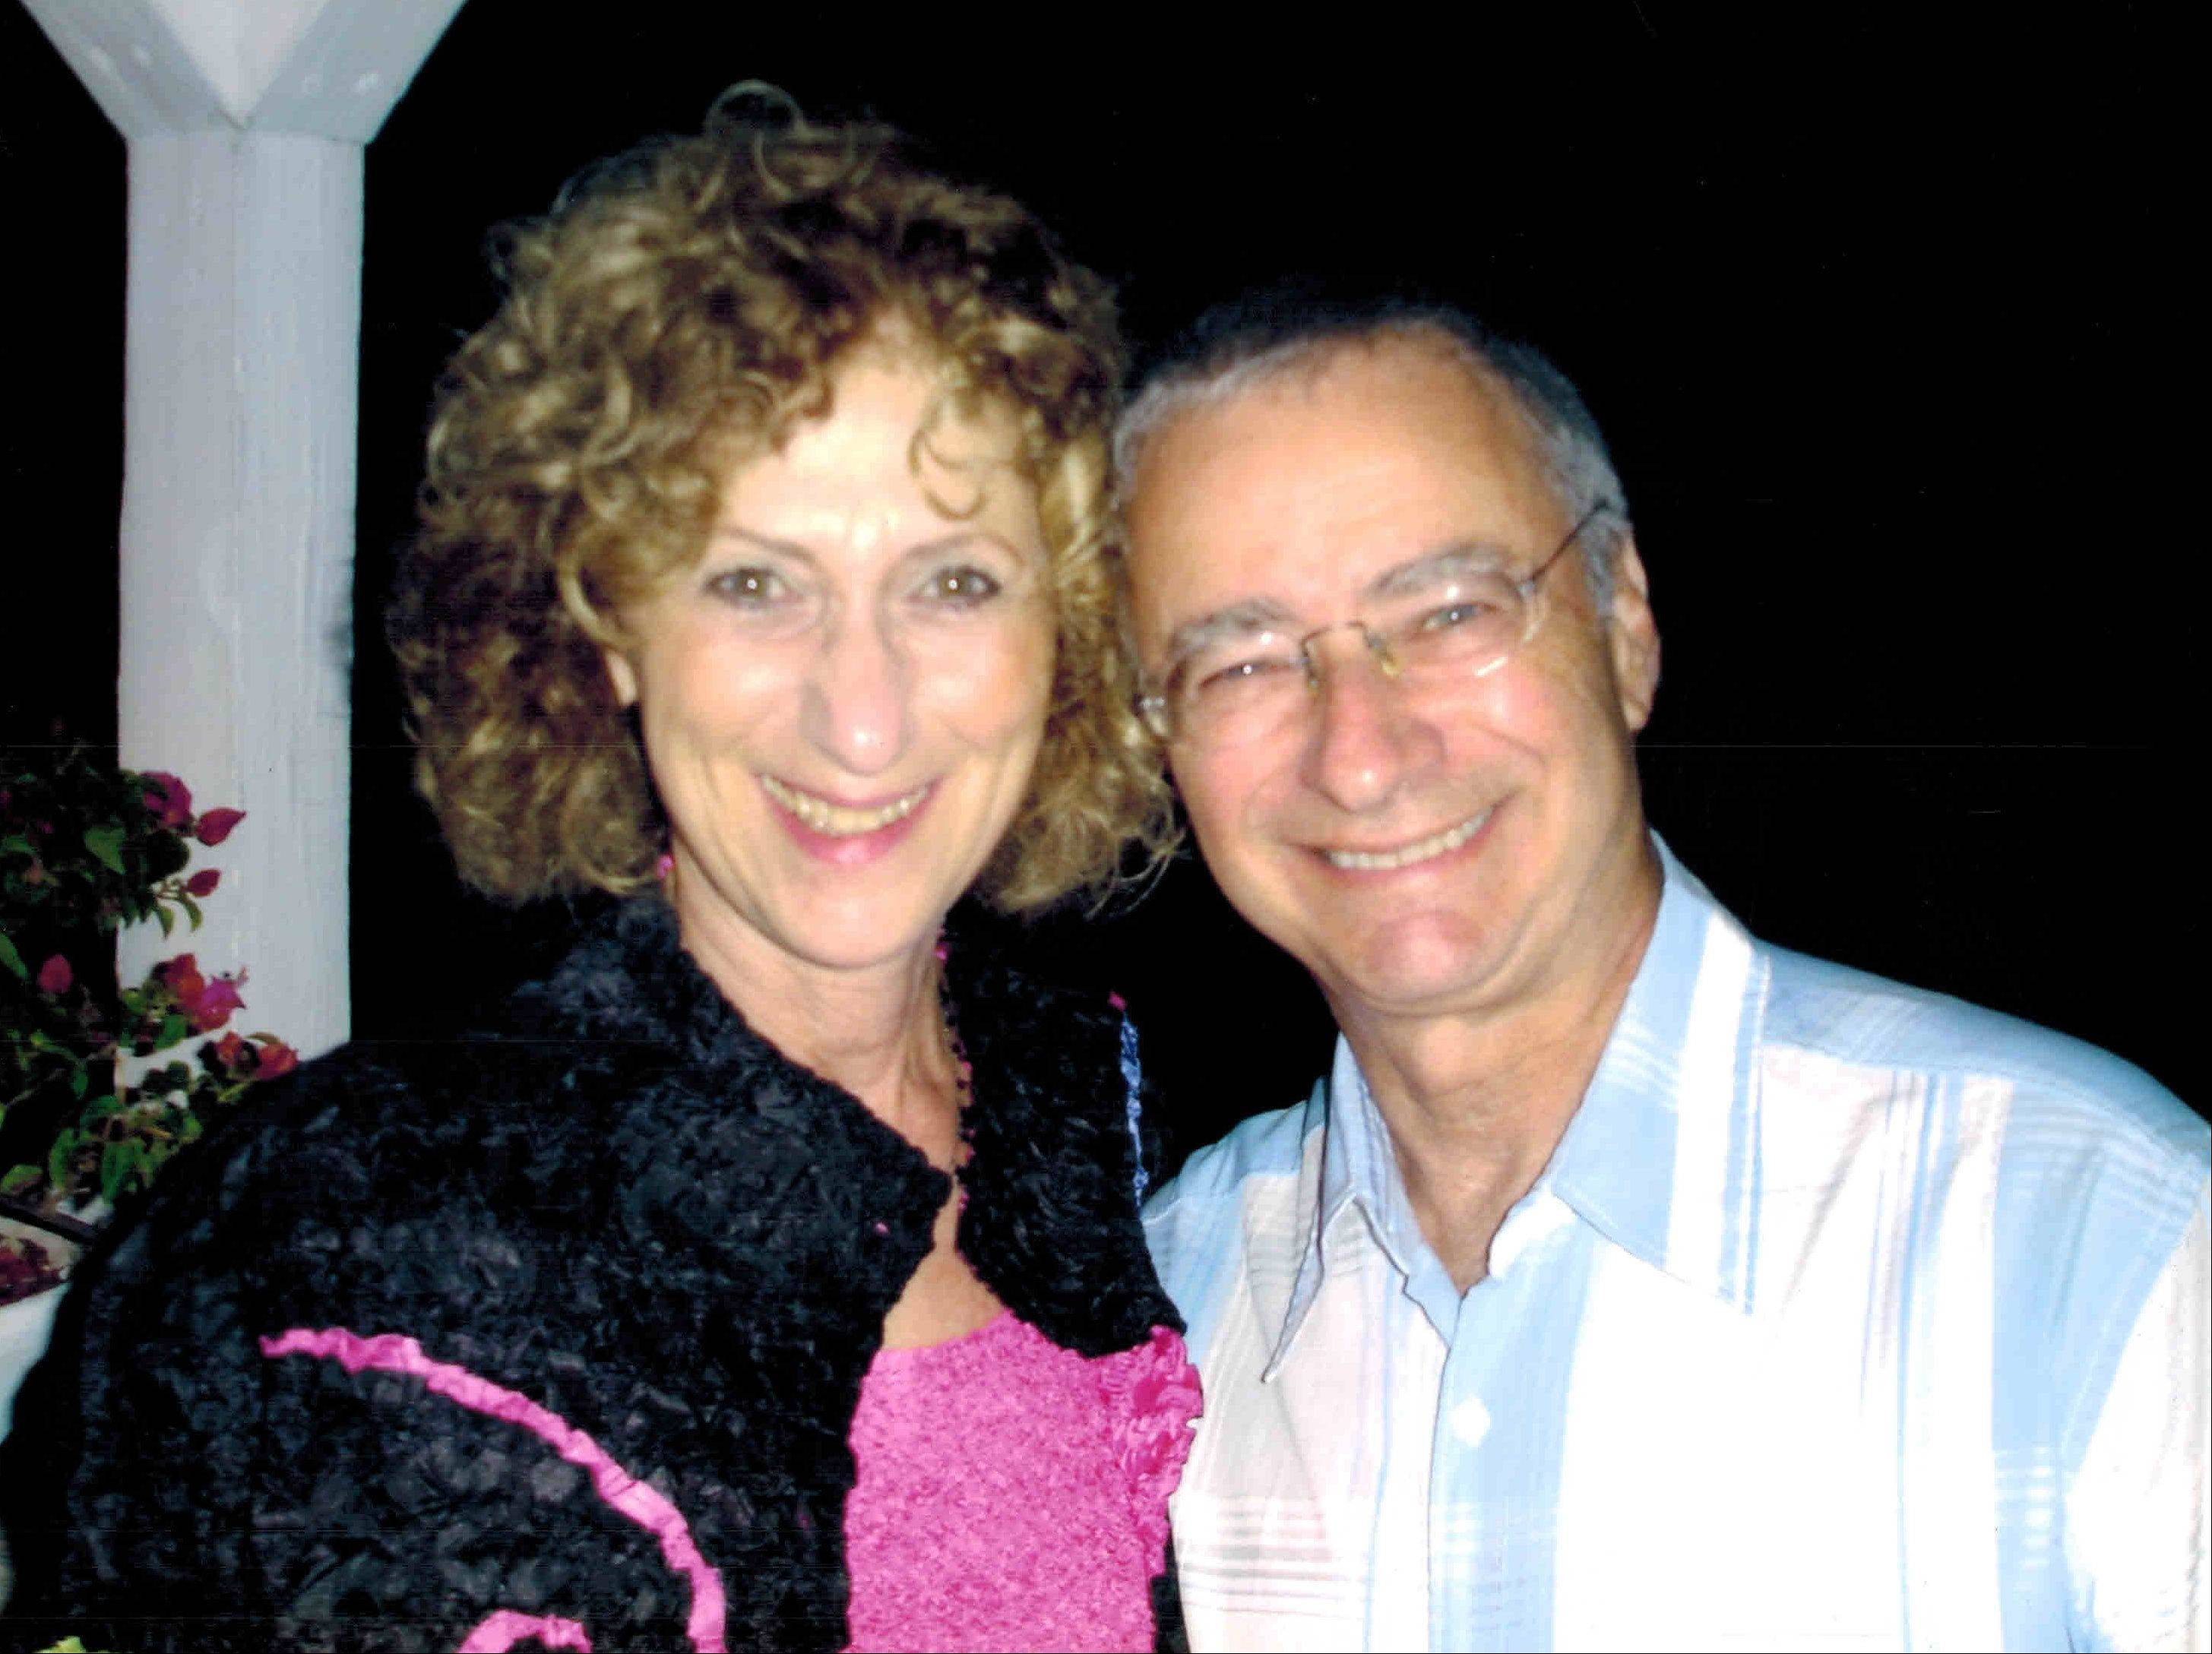 Burton Lindner, 69, and Zorine Lindner, 70, of Glenview were killed about a block from their home in a train derailment on July 4.